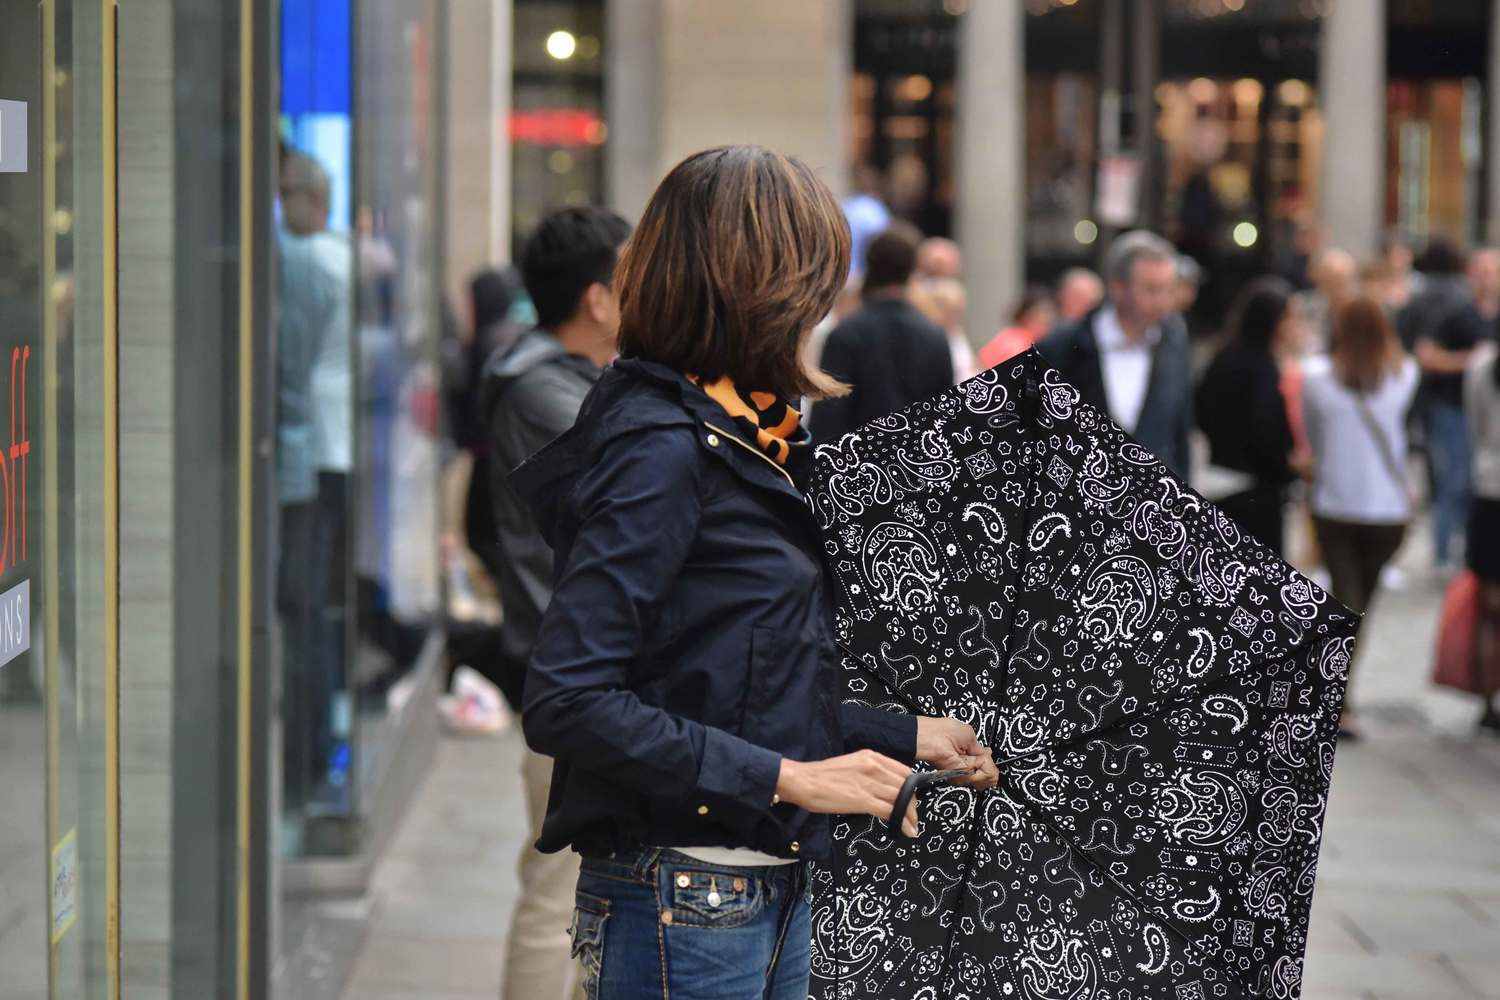 Zara jacket, Zara printed pocket square, Zara bandana print umbrella, True Religion jeans, Ralph Lauren polo sweater, Covent Garden, London, UK. Image©thingstodot.com